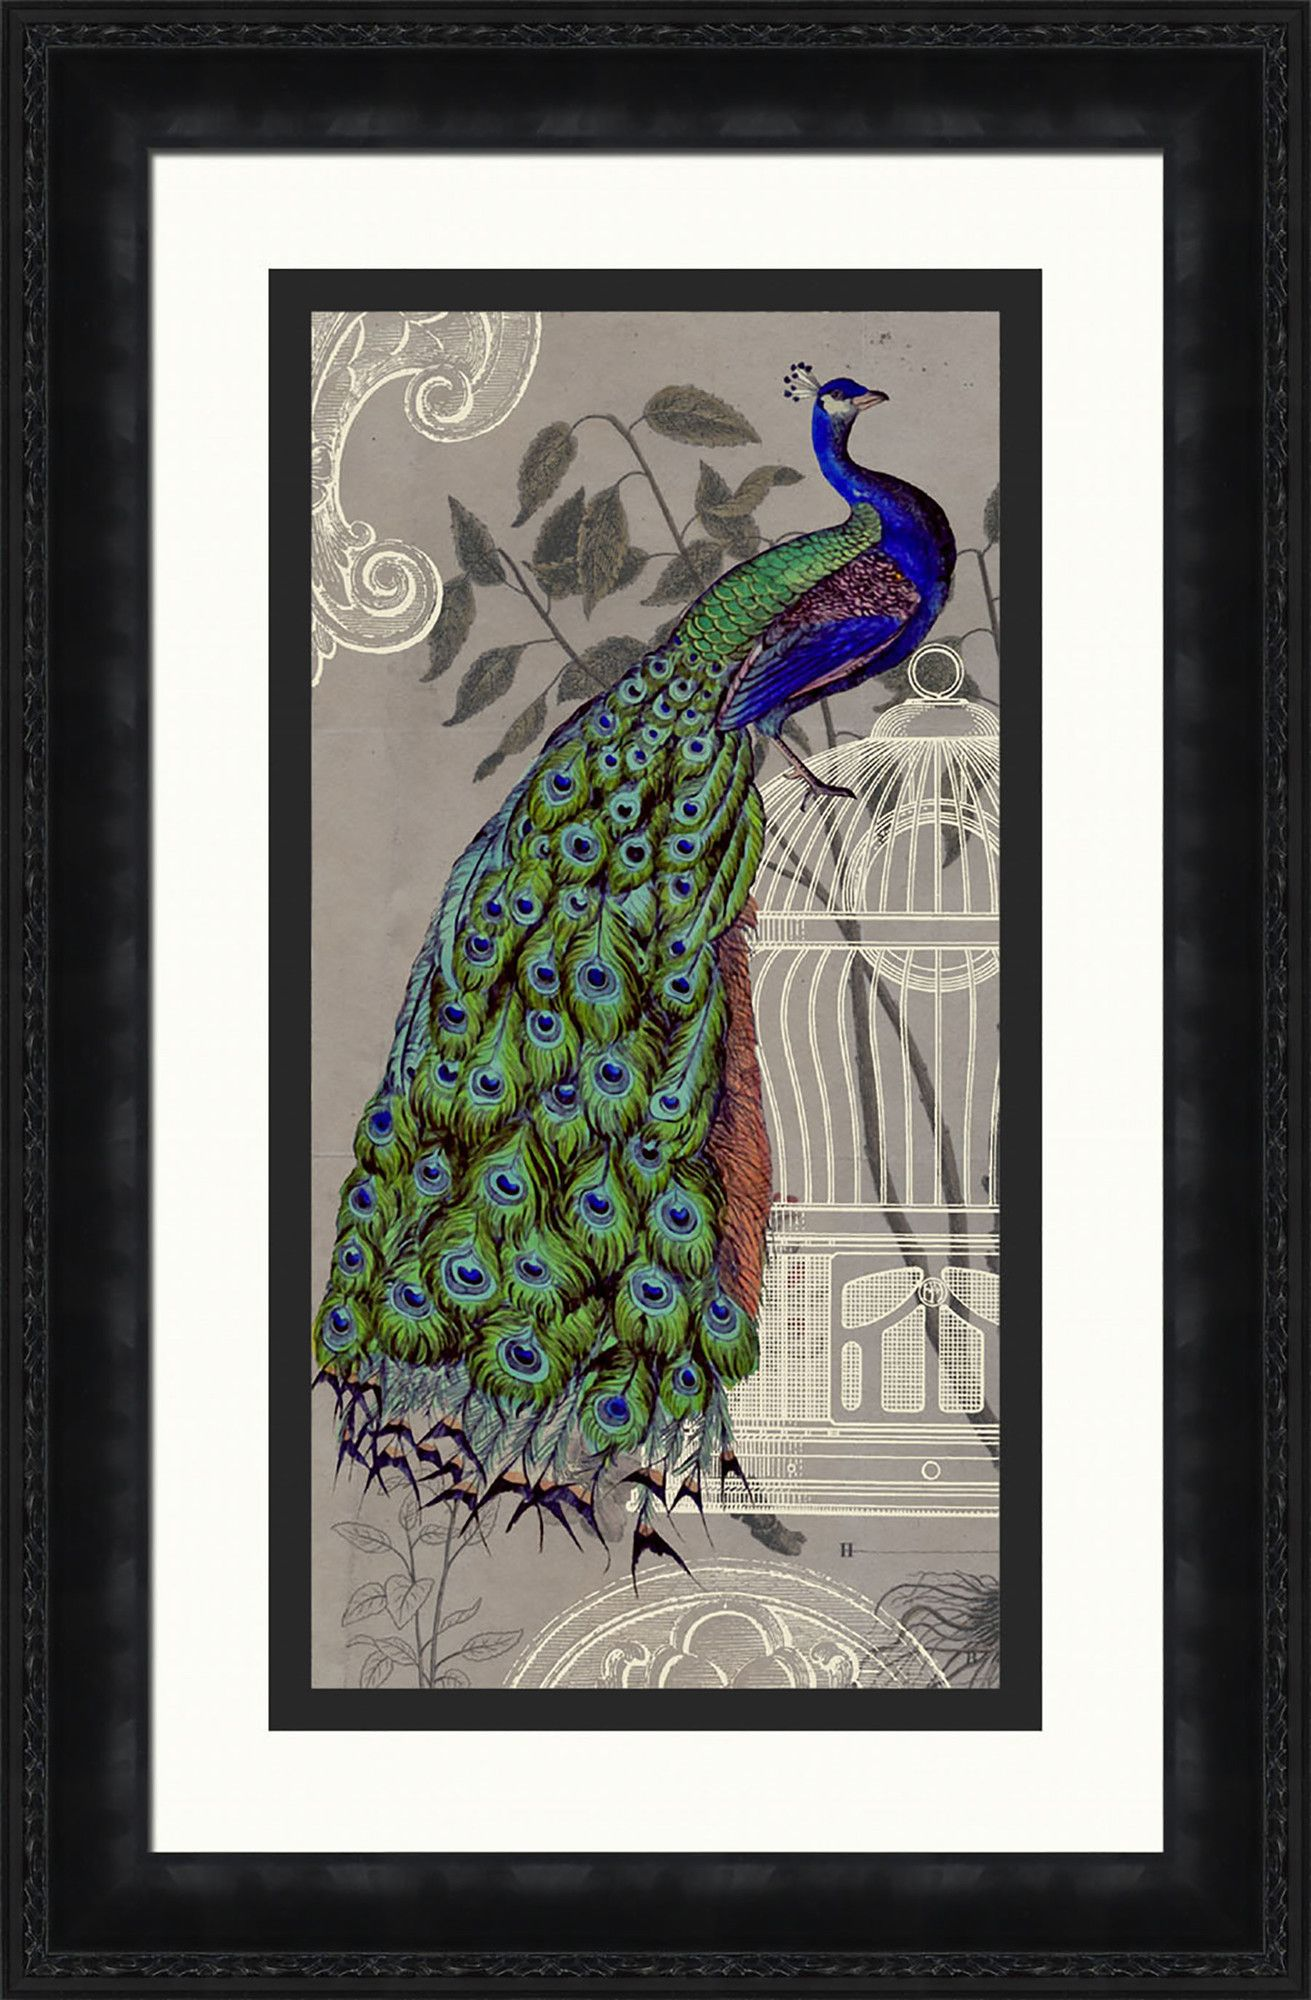 Peacock framed graphic art graphic art and peacocks